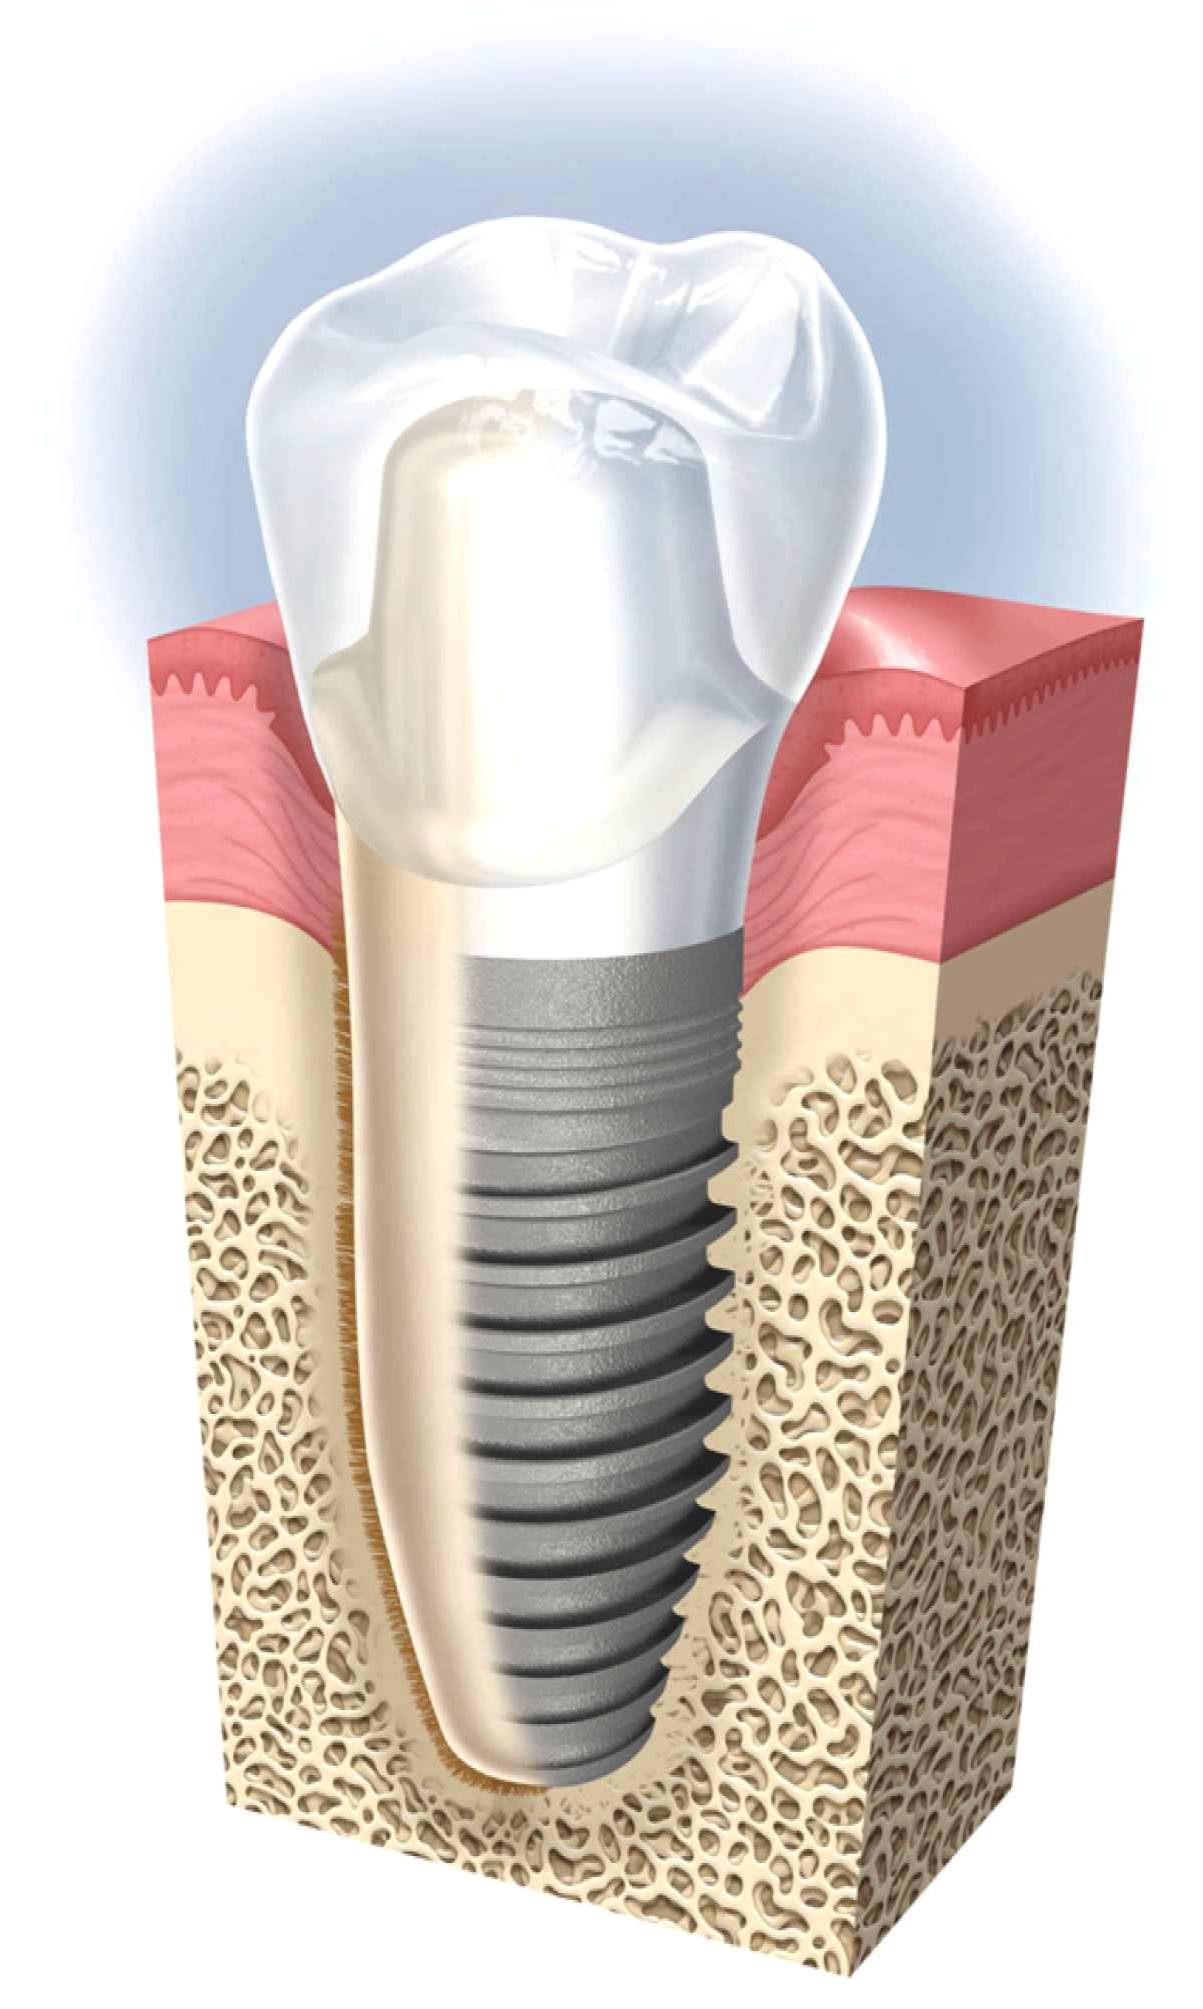 dental implants ryde cost